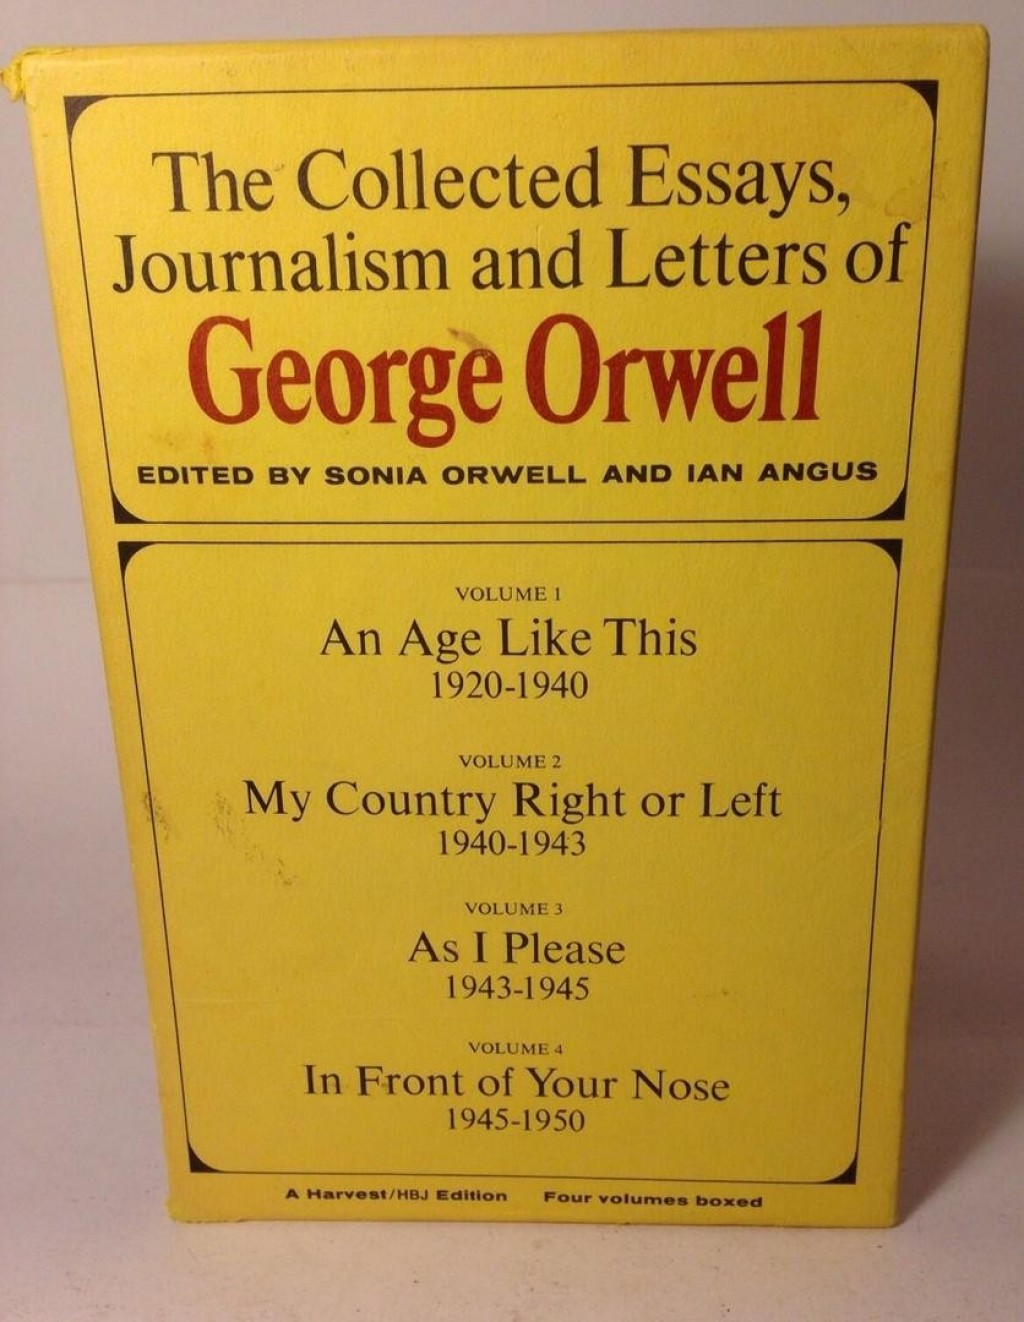 023 Orwell Essays Essay Example Collected Journalism Letters 1 D3543dfe52fc568d792dbe662f9da250 Singular Amazon Pdf Epub Large